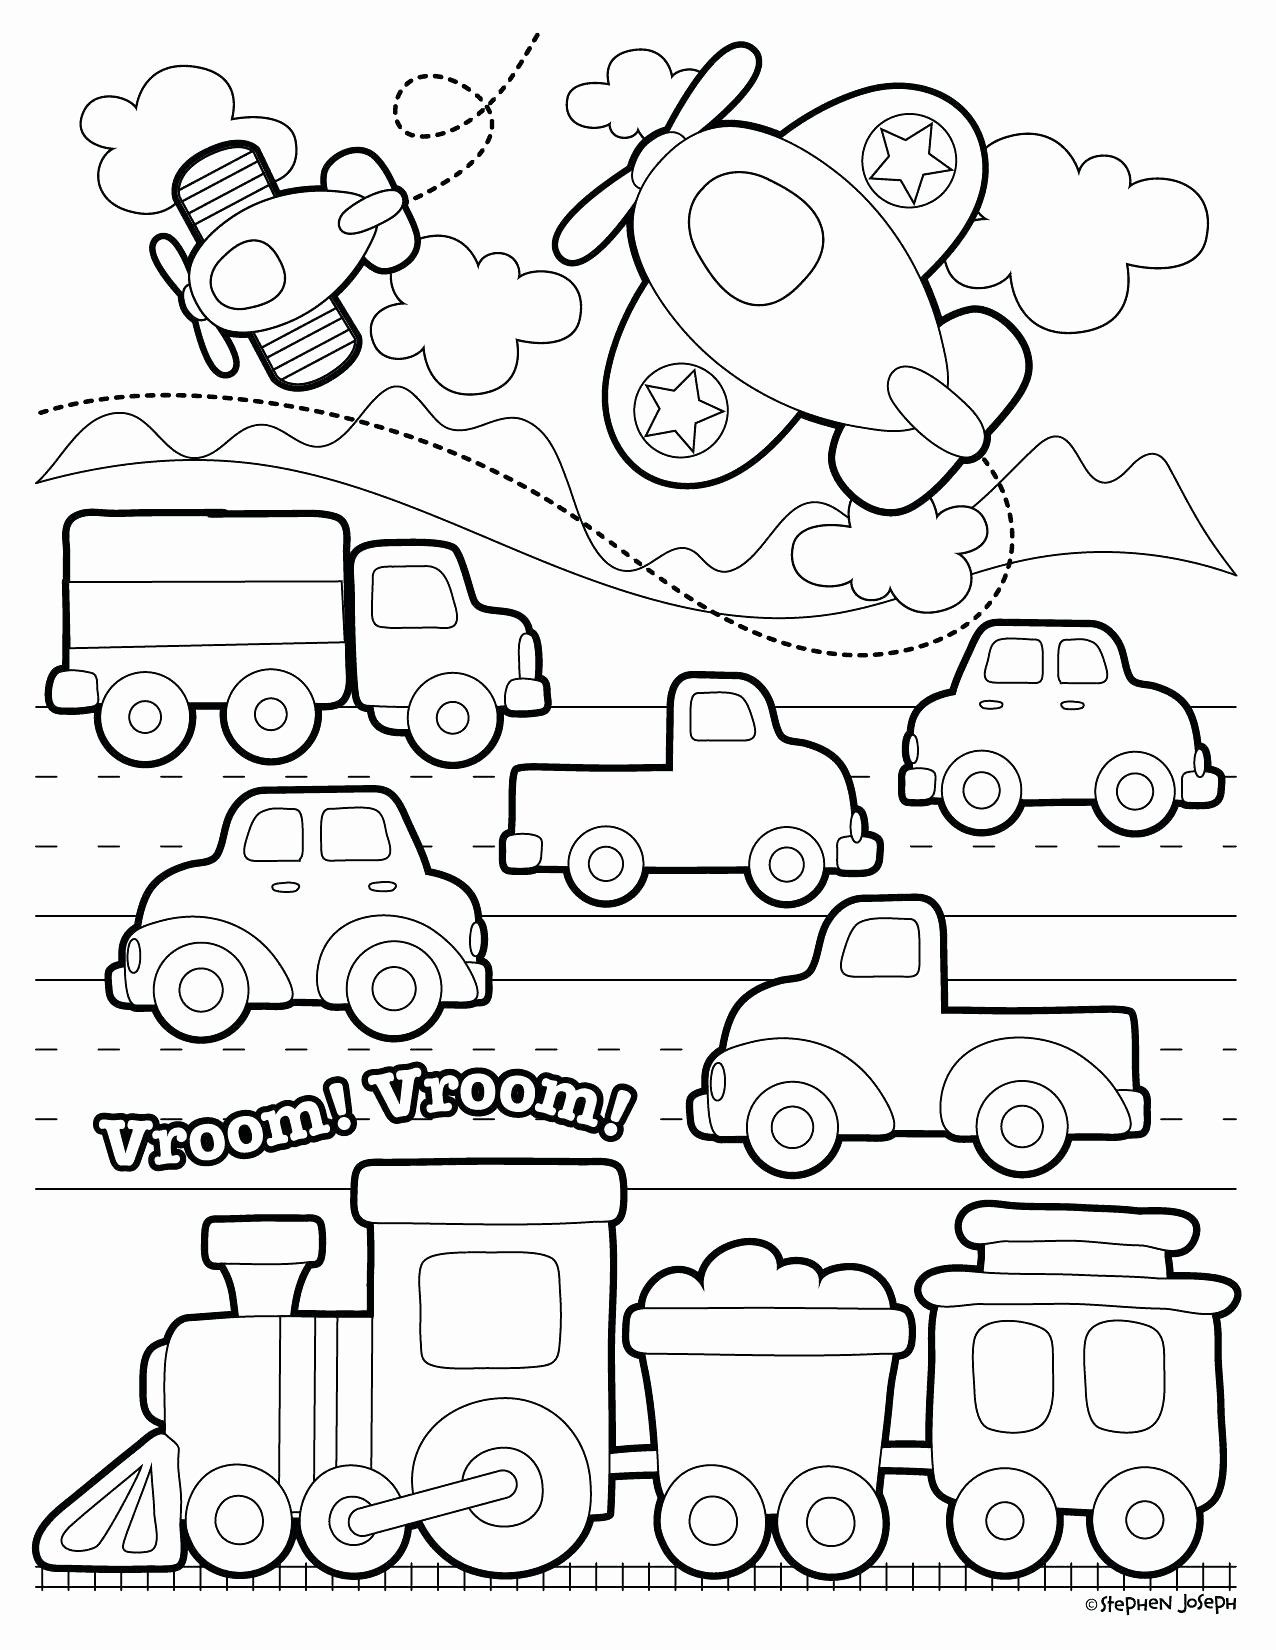 Transportation Coloring Pages For Toddlers In 2020 Preschool